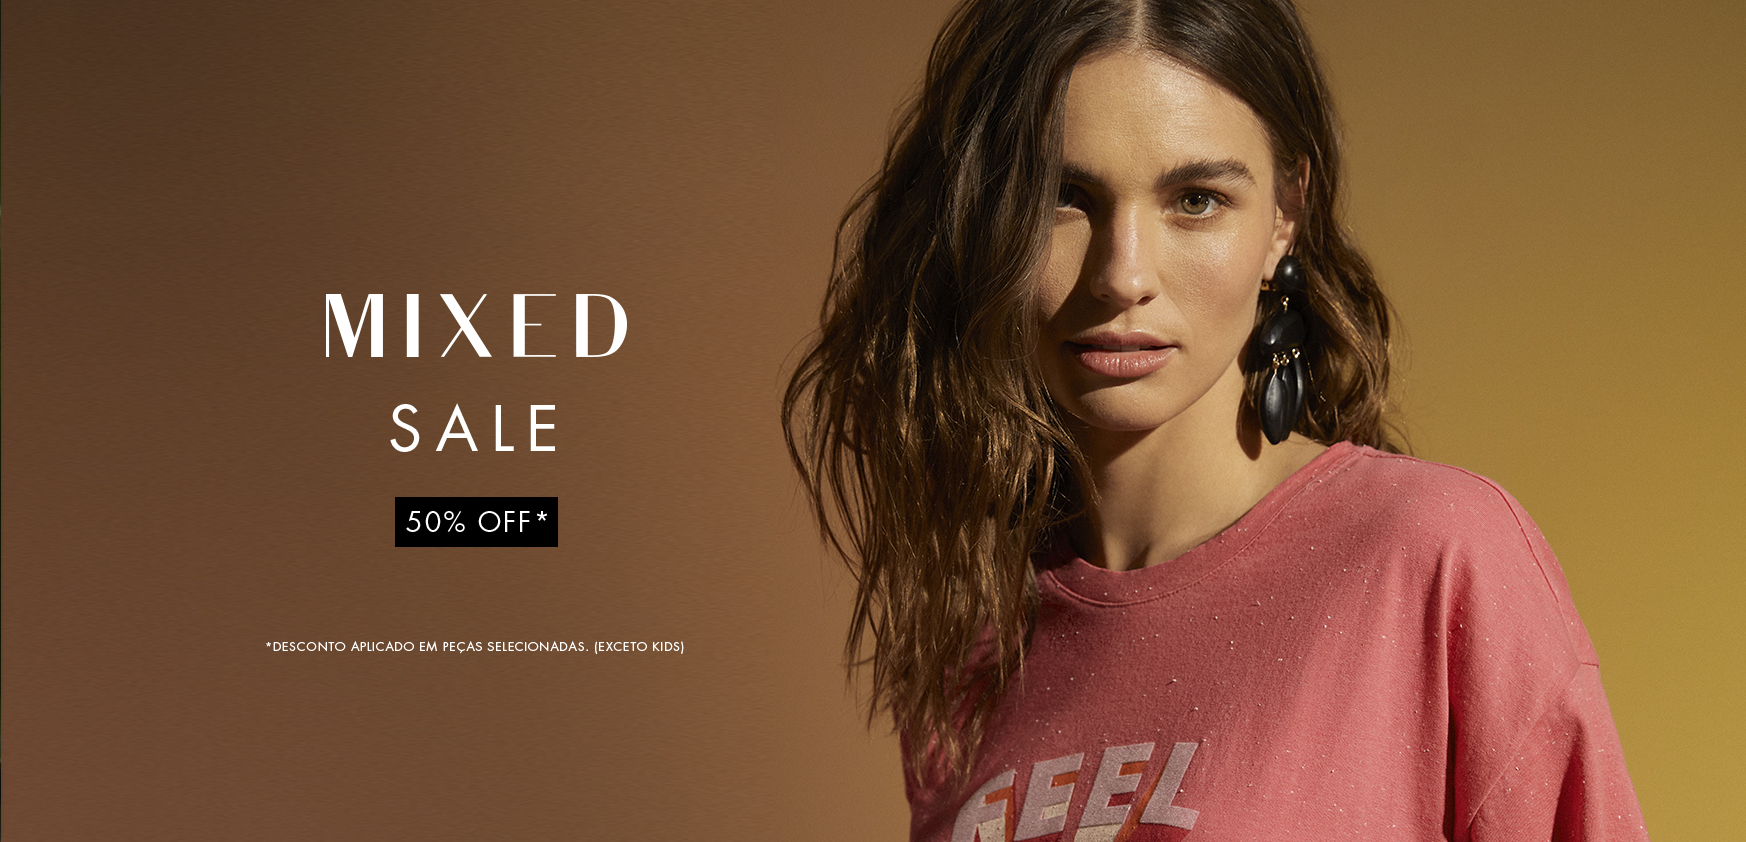 MIXED SALE